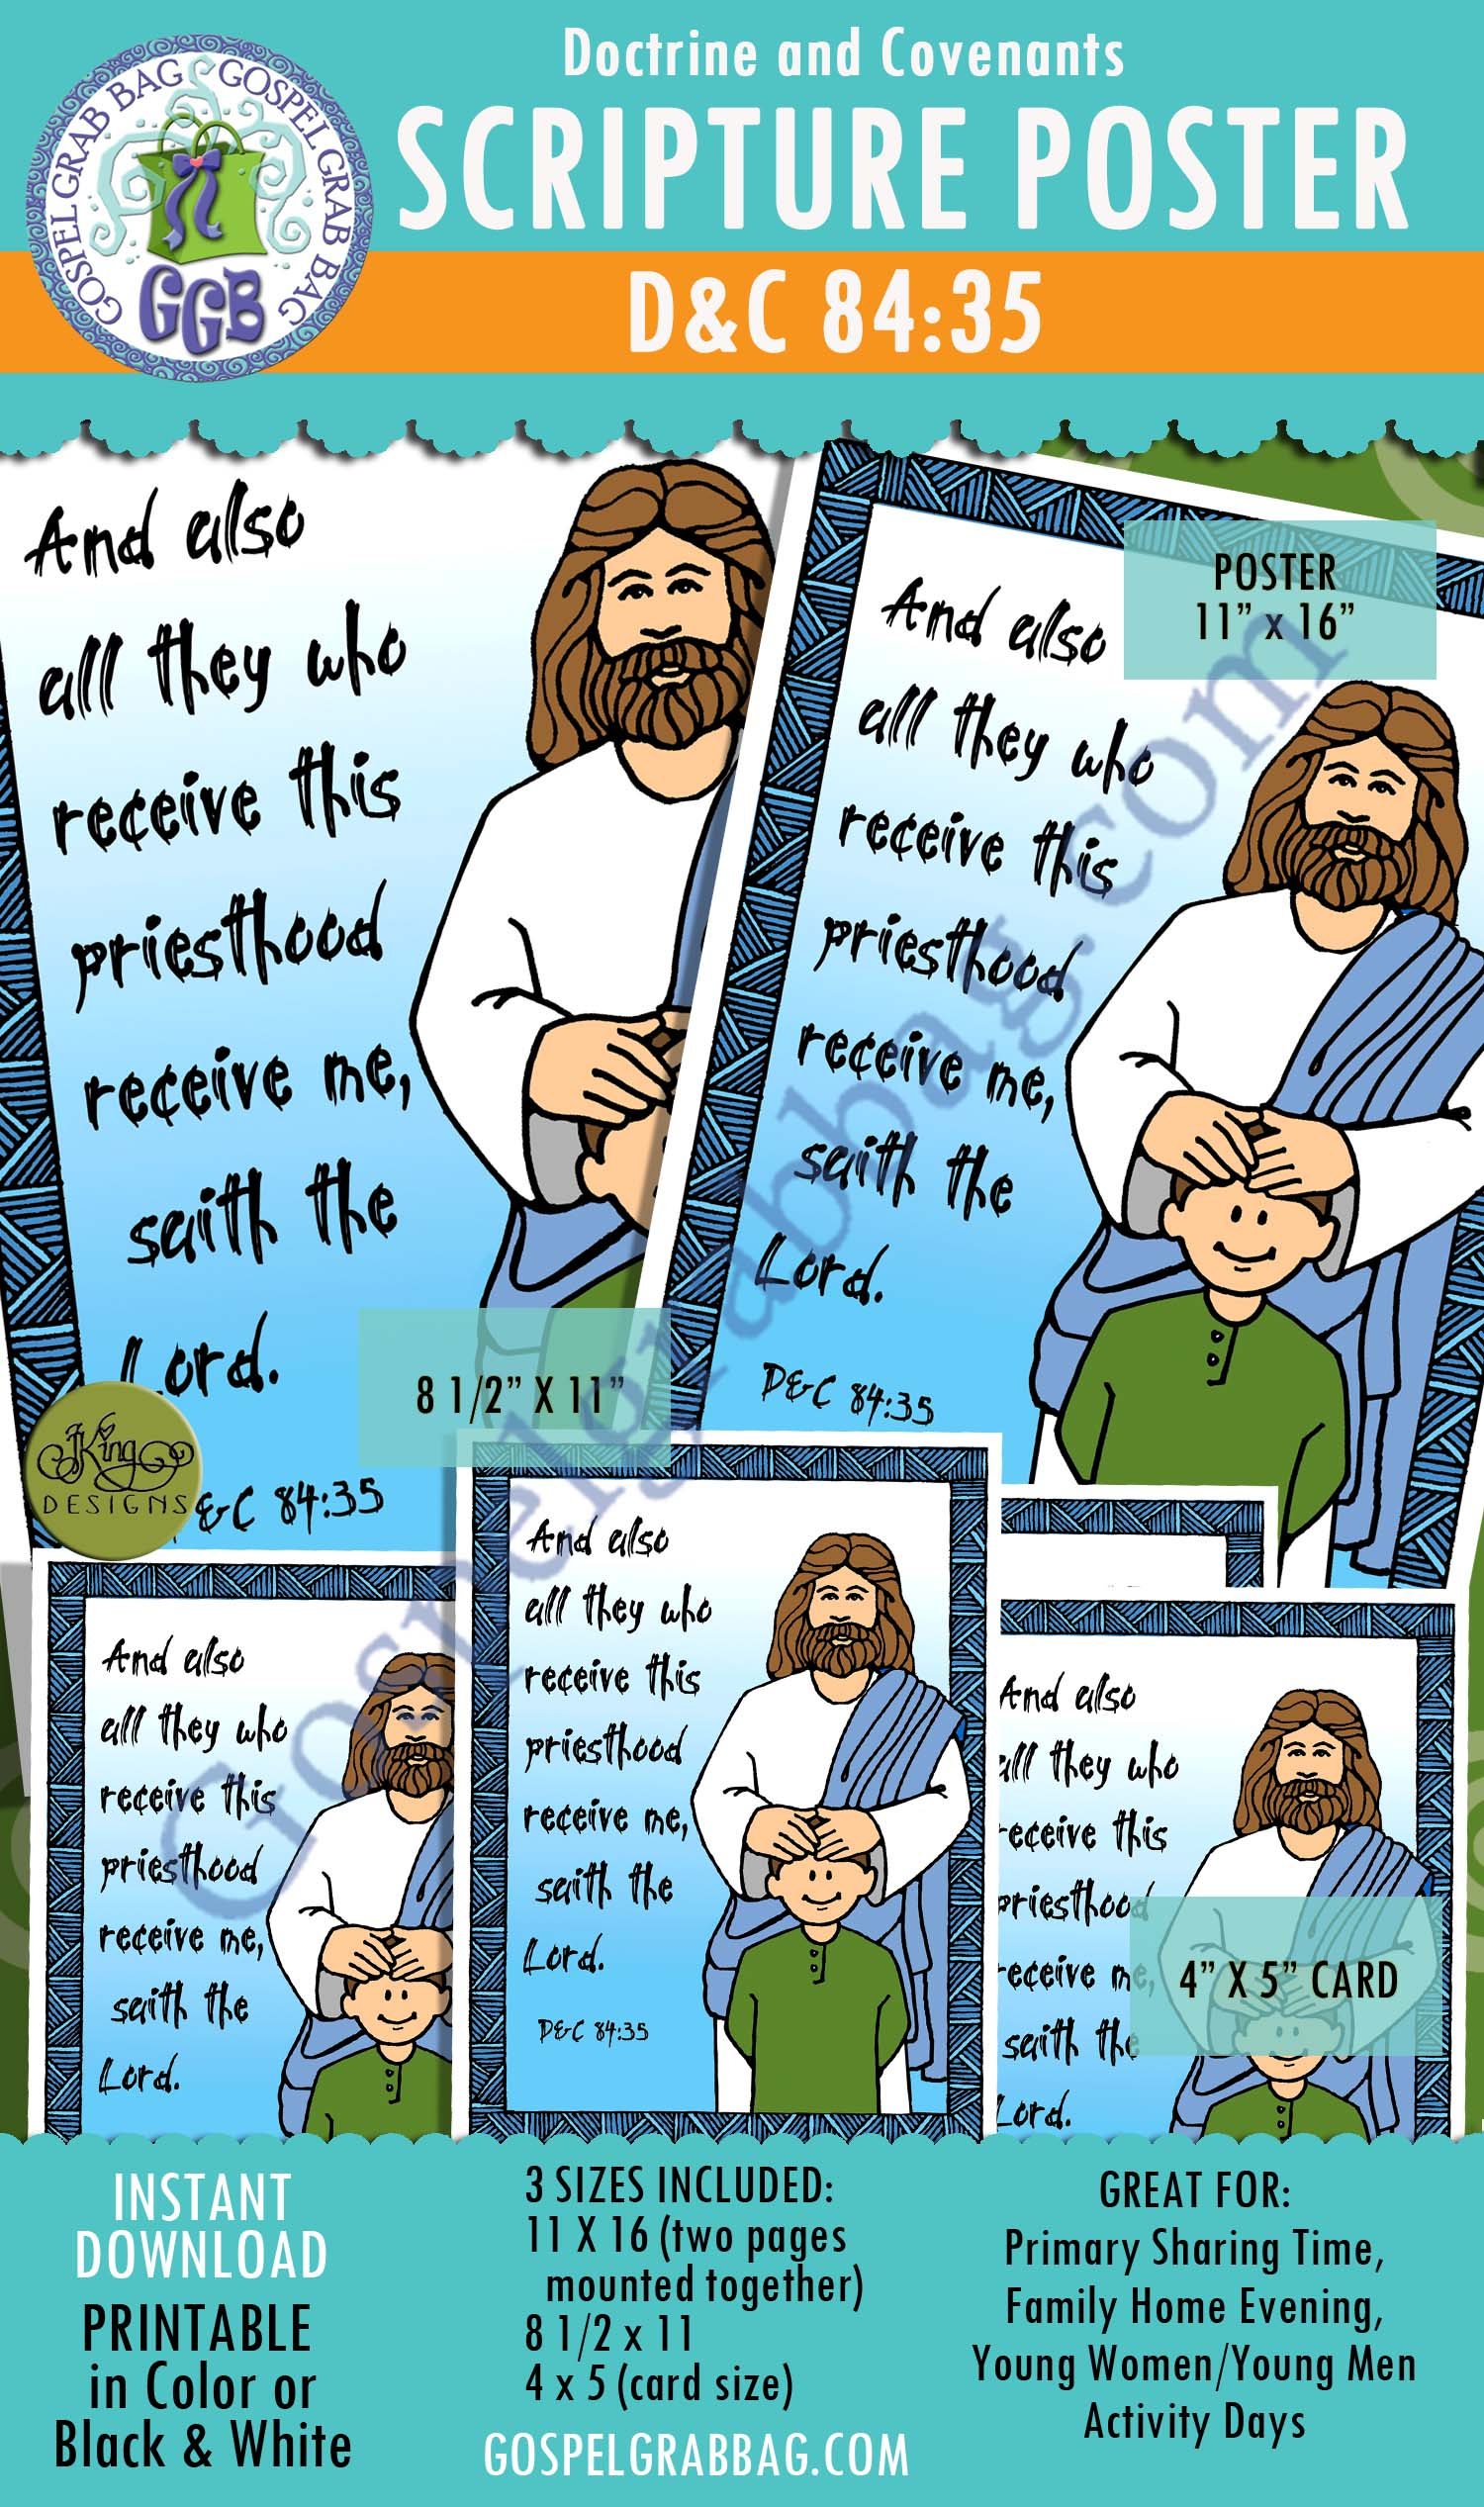 "$2.00 D&C 84:35 - SCRIPTURE POSTER AND CARDS, Priesthood, Jesus Christ, ""And also all they who receive this priesthood receive me, saith the Lord."" LDS Printables, GospelGrabBag.com"